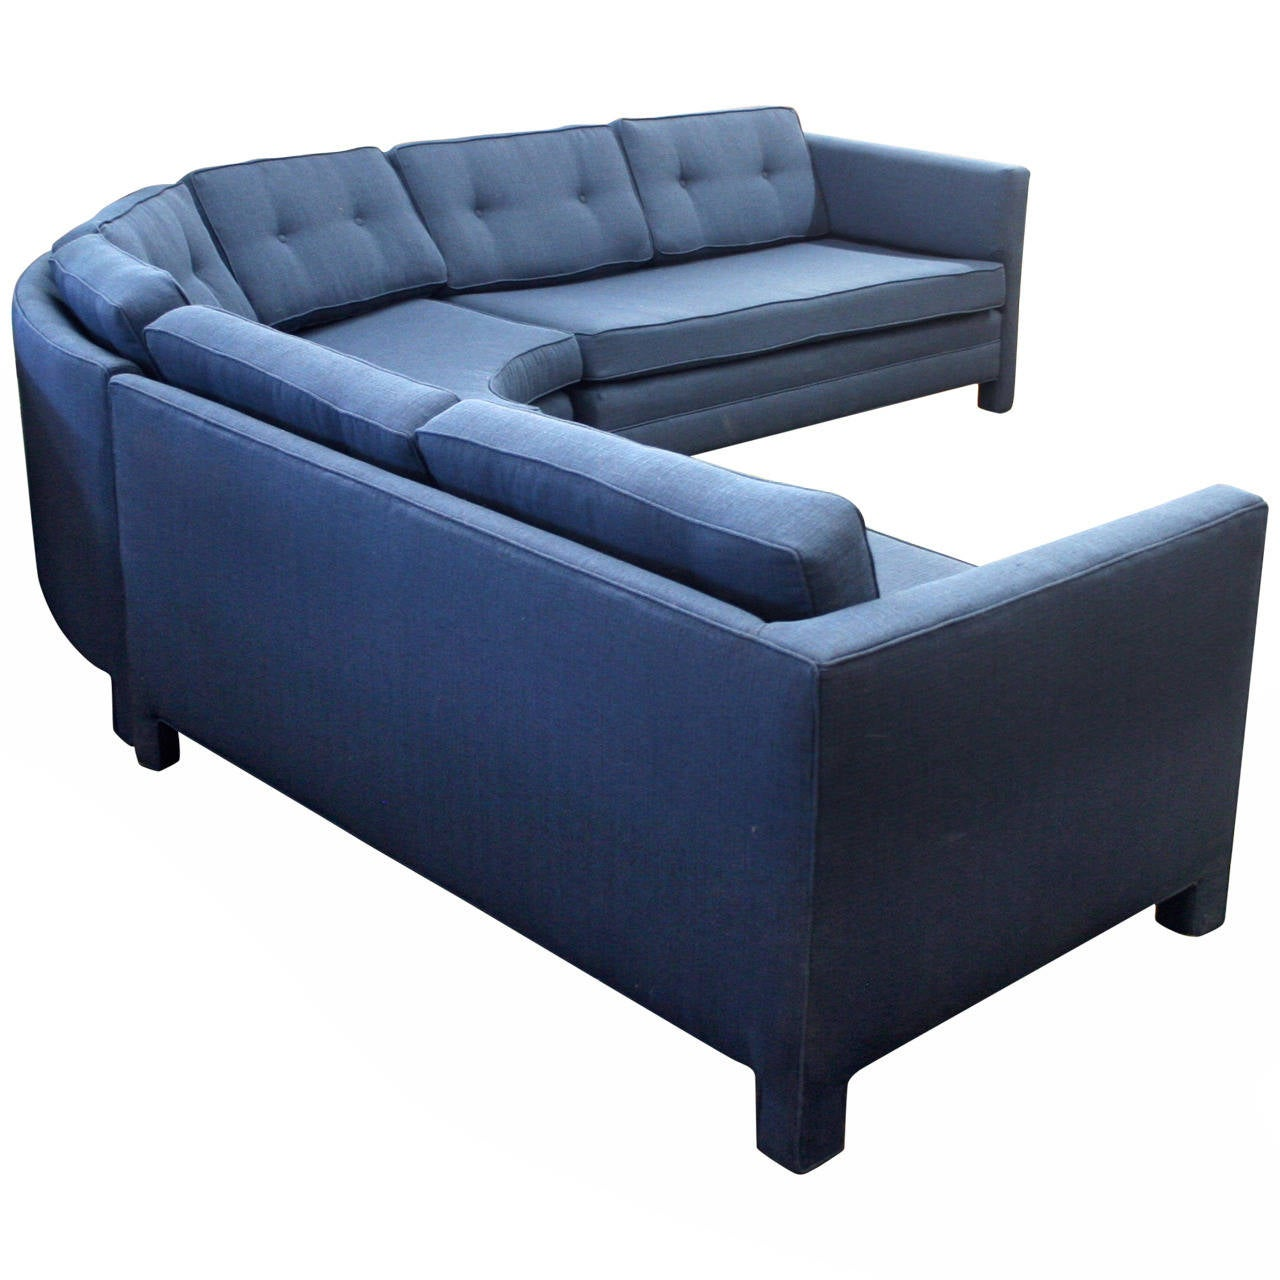 three piece curved parsons style sectional sofa circa